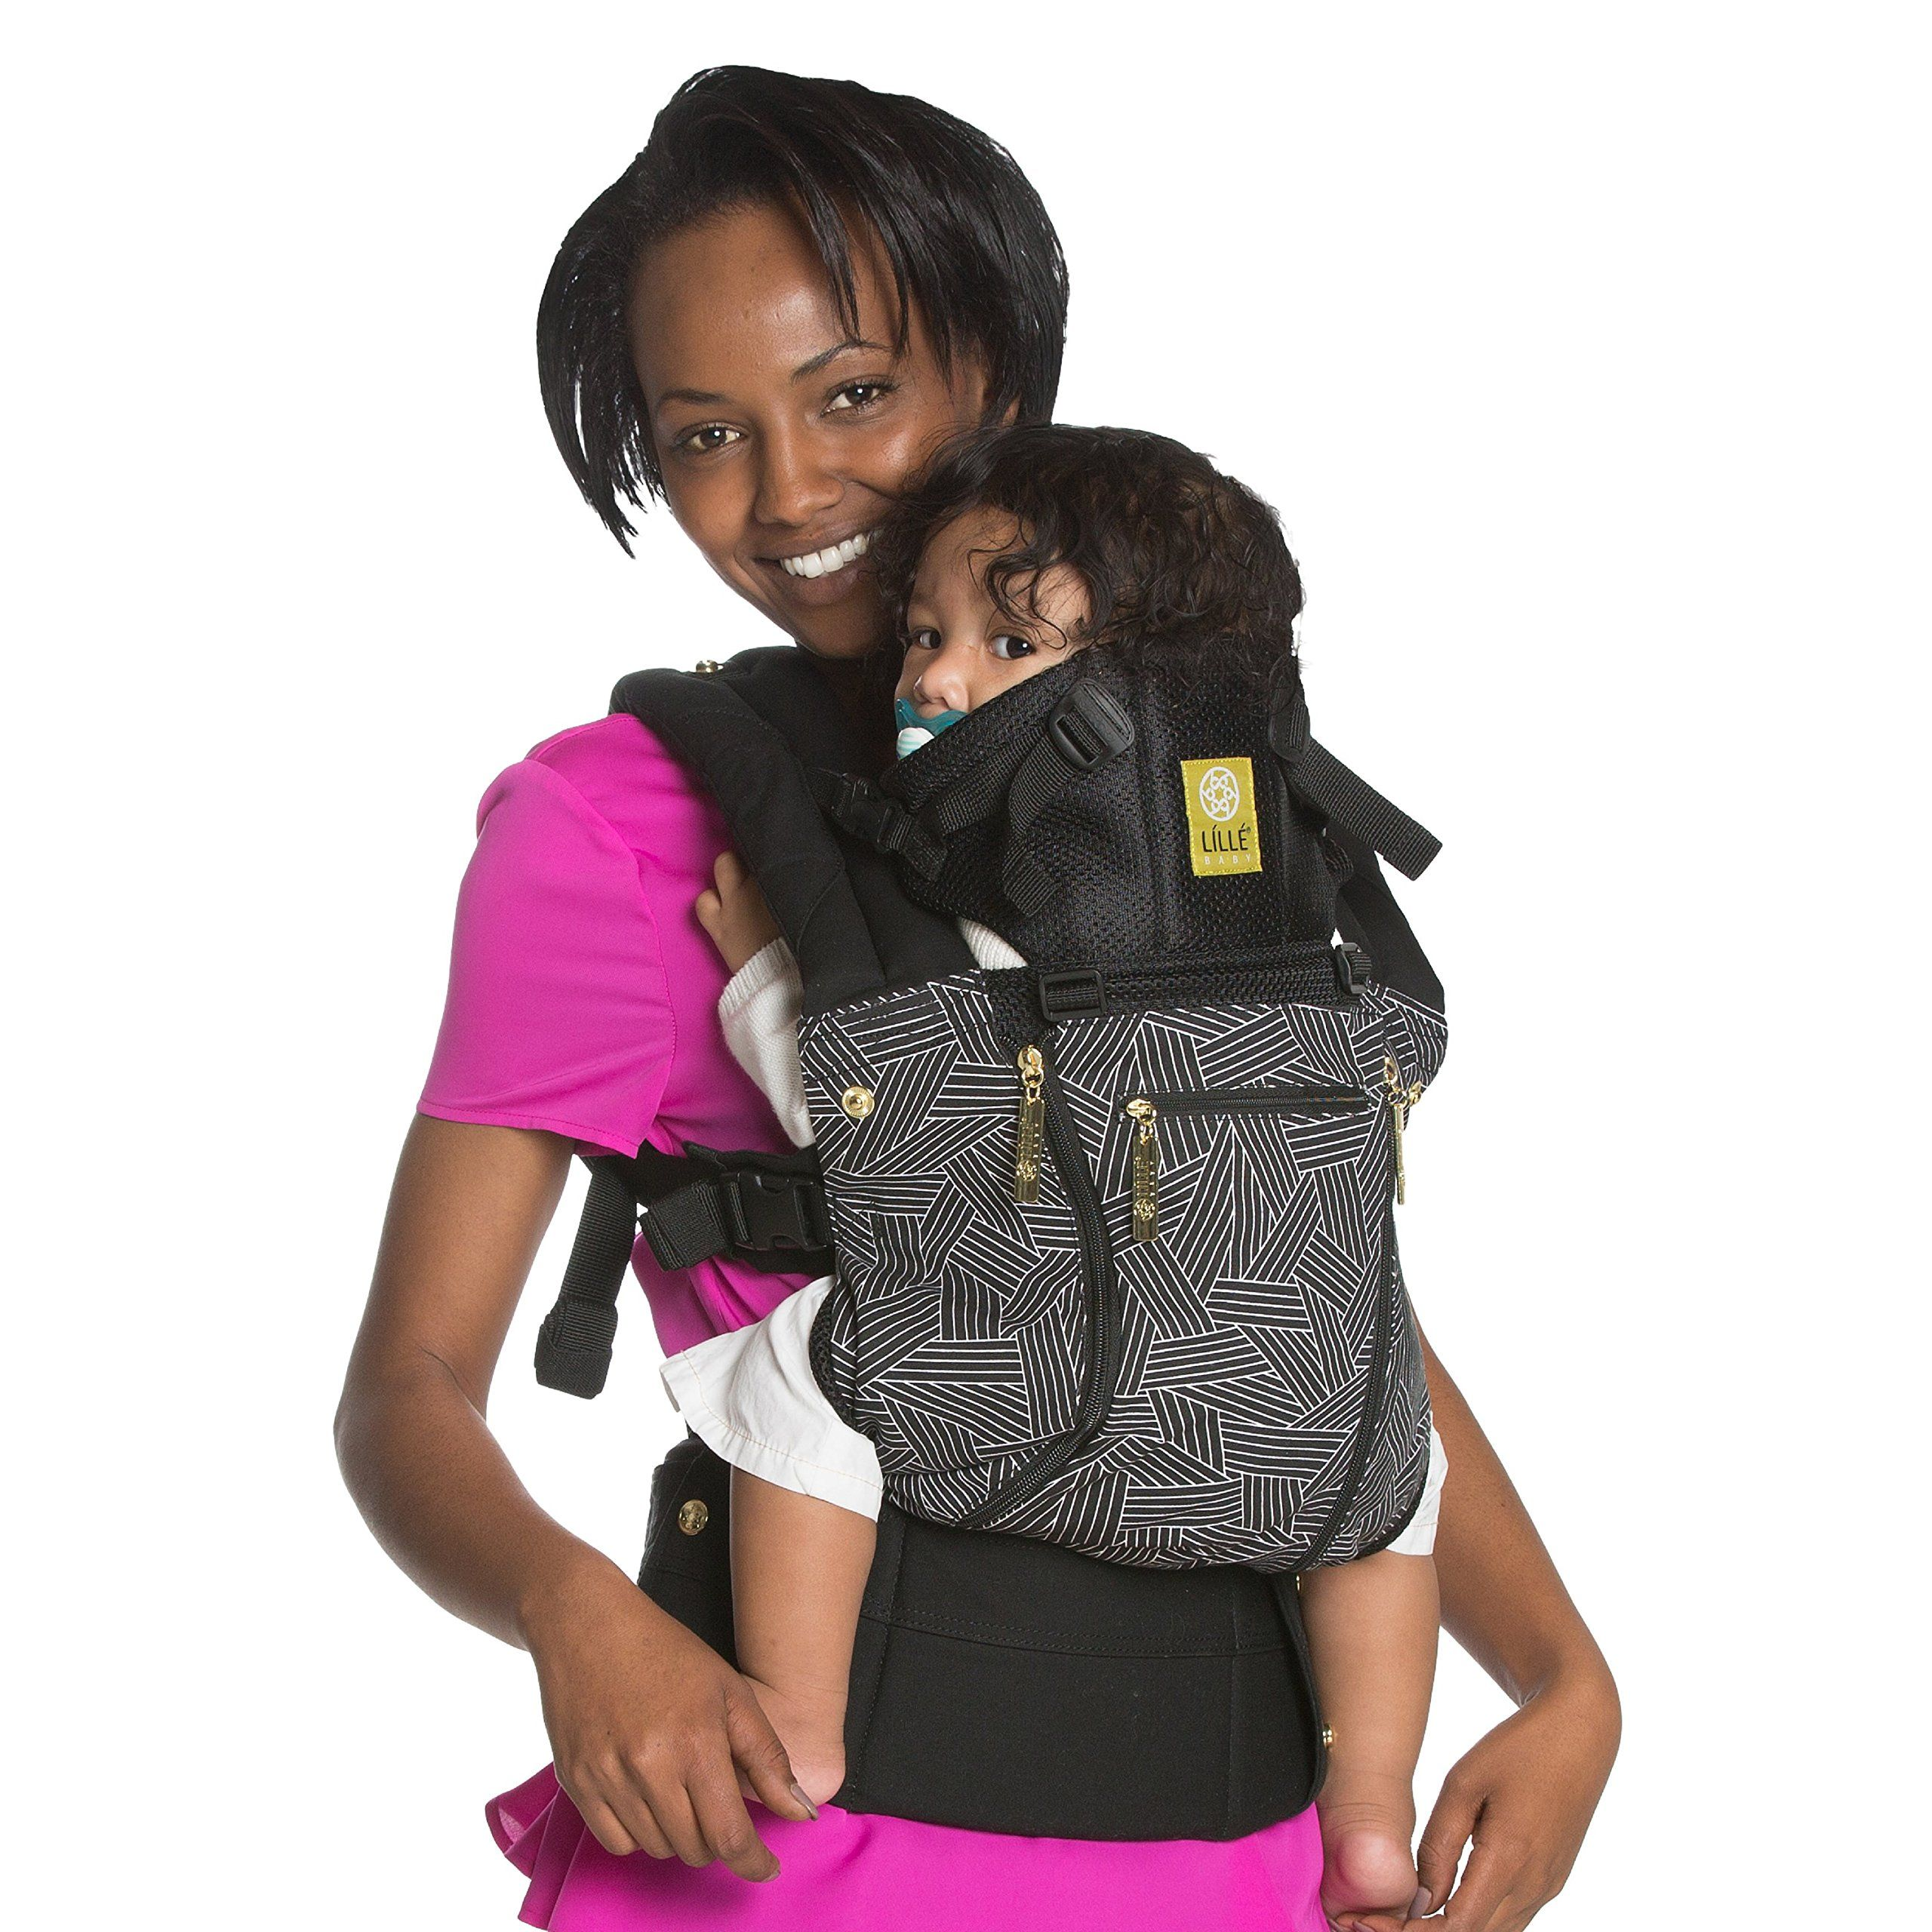 Six Position 360 Ergonomic Baby Child Carrier By Lillebaby